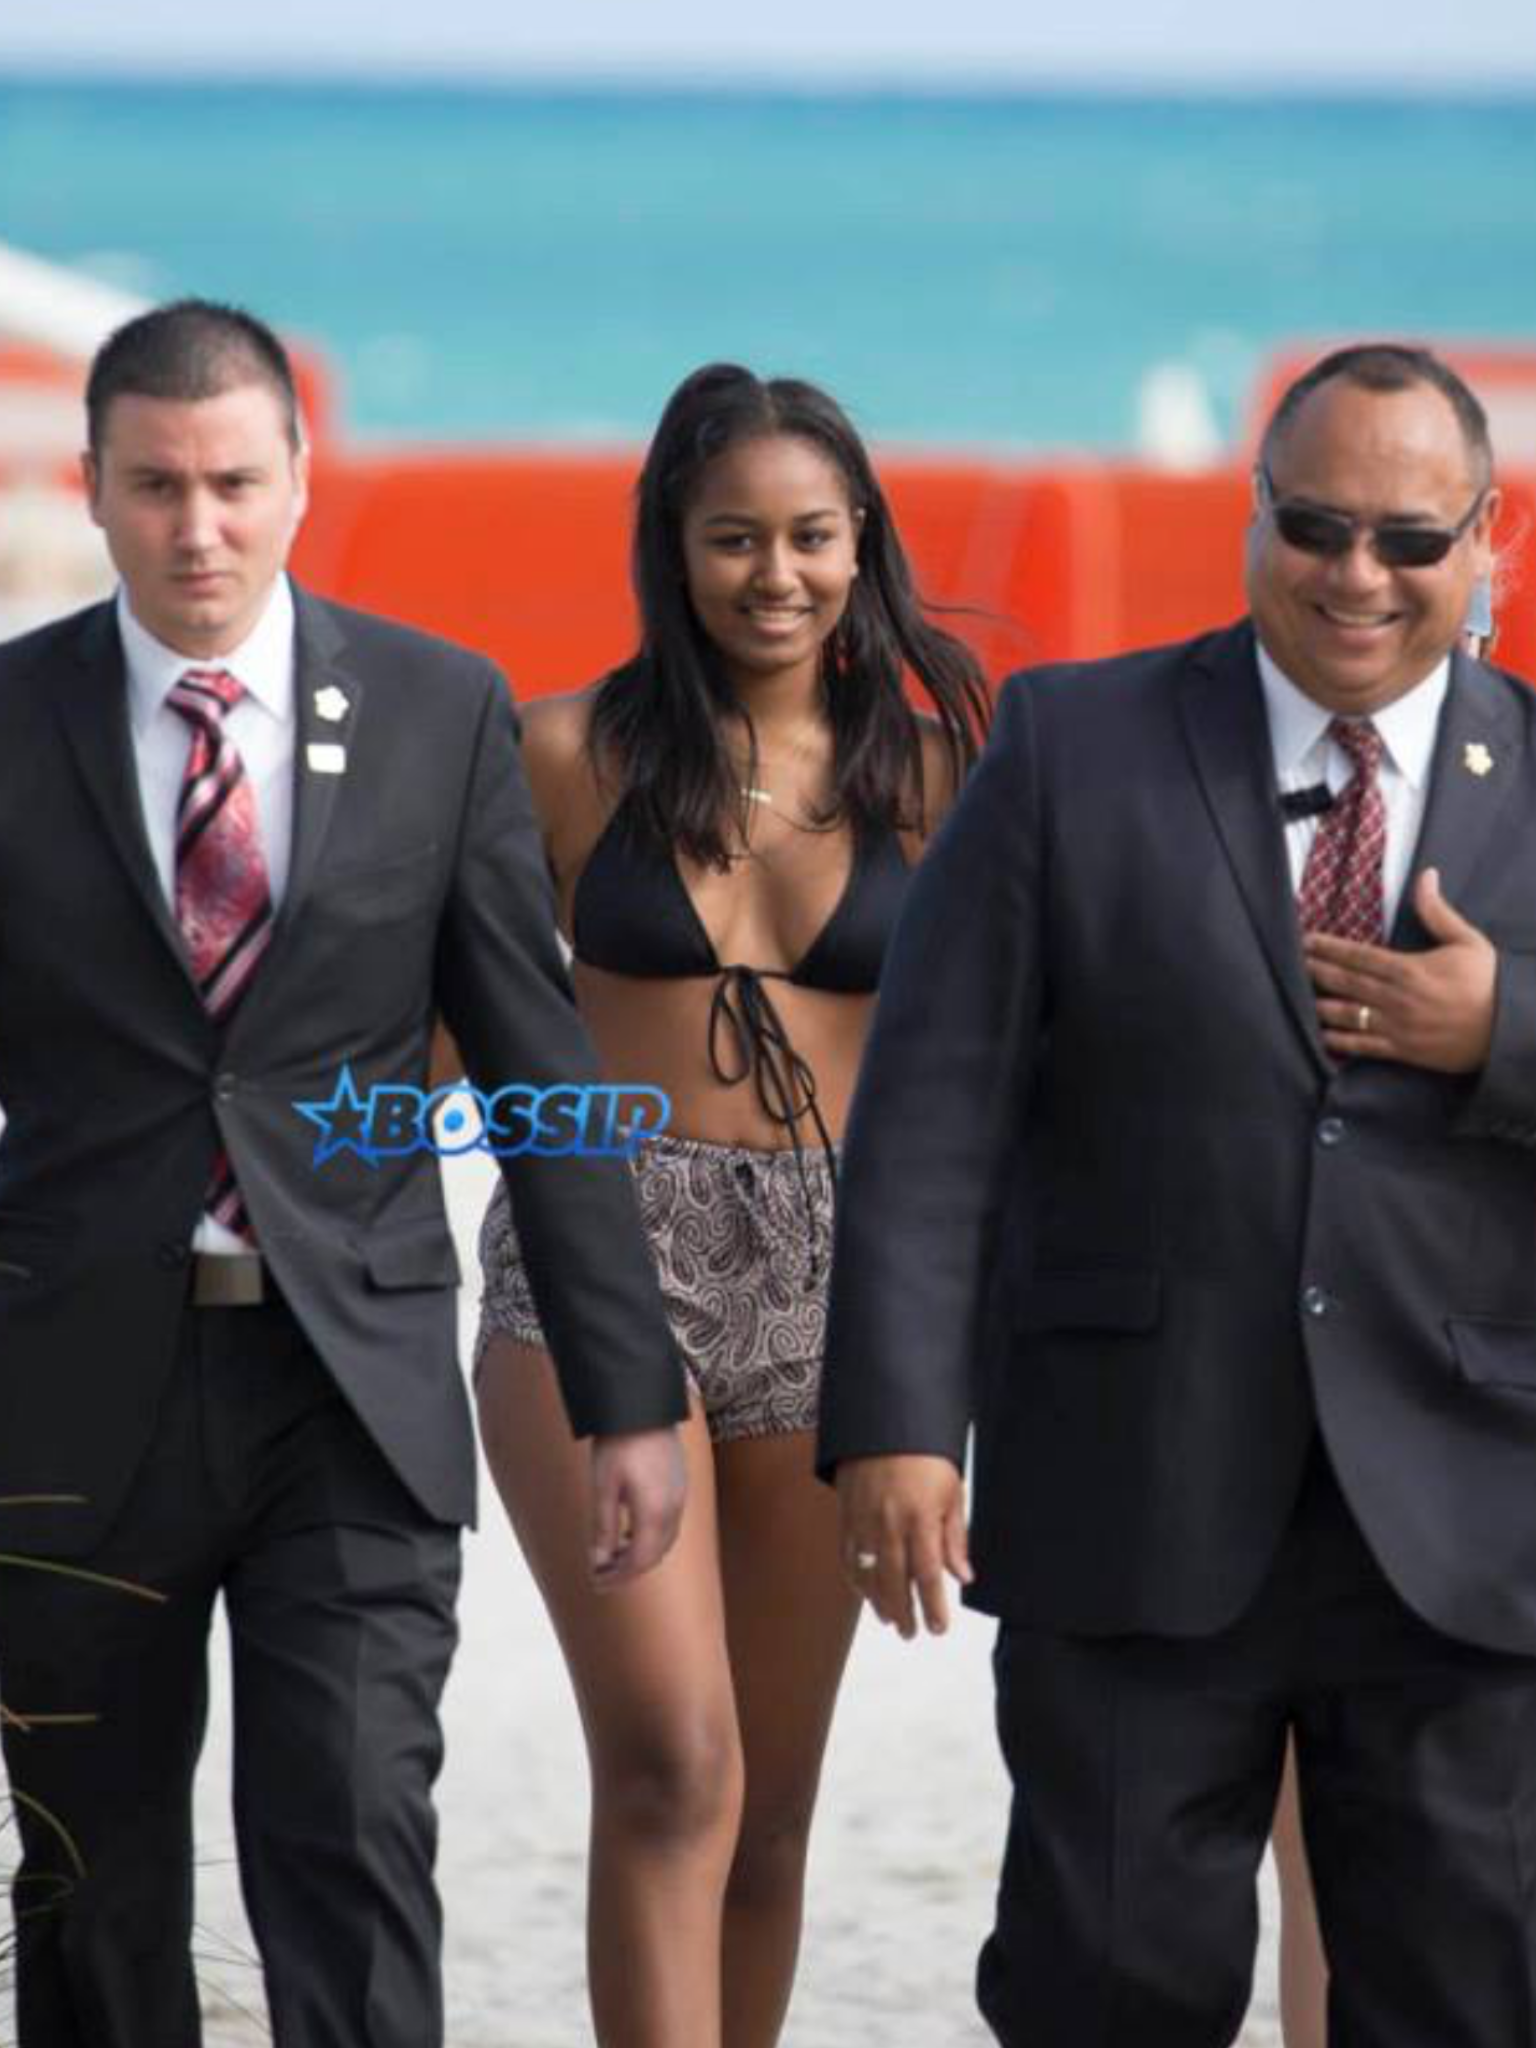 Obamas eldest daughter went to the rally on her own on January 28, 2017